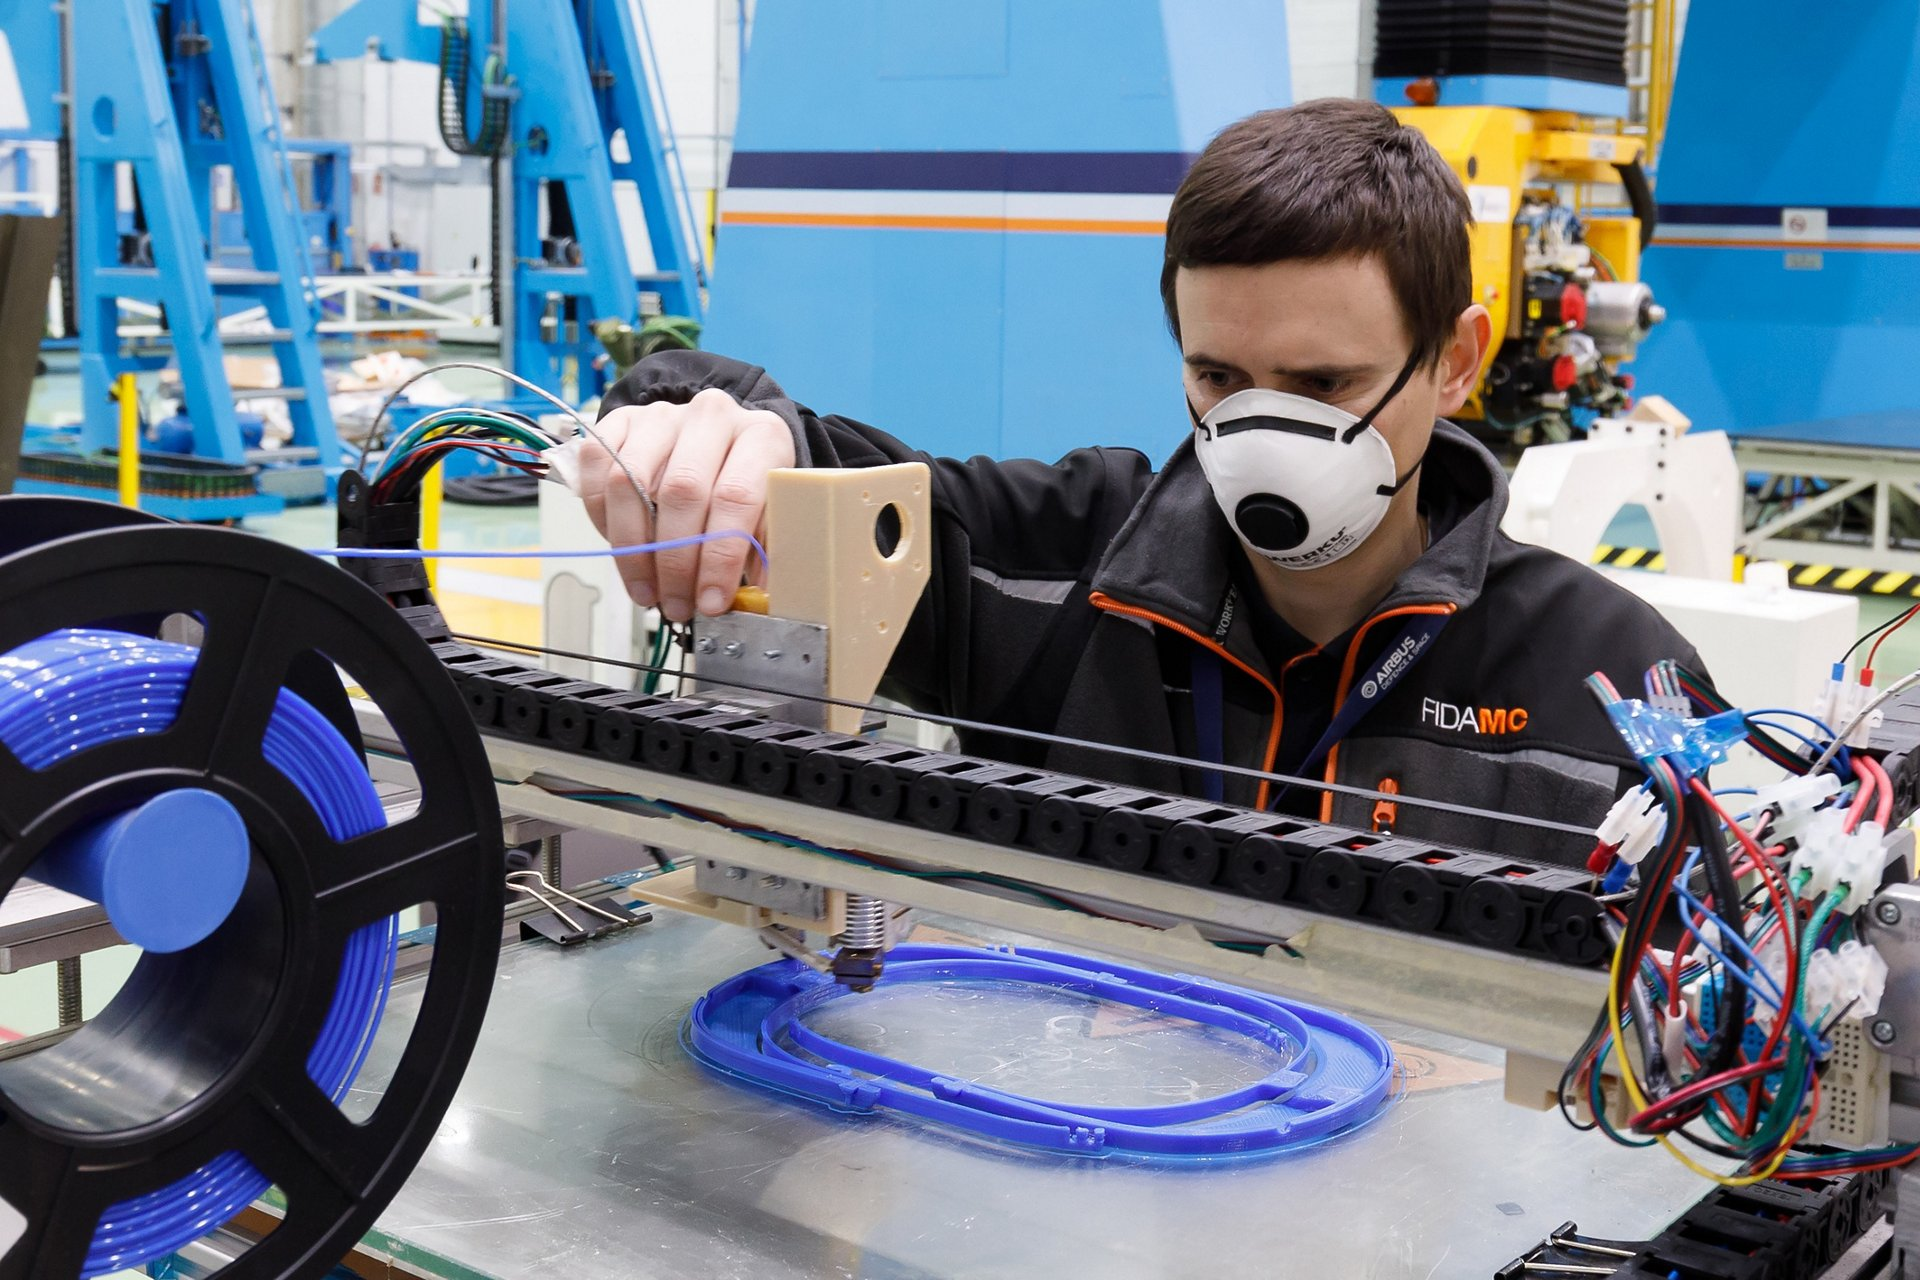 Employees from Airbus in Spain are working around the clock to produce protective equipment using 3D printing technology